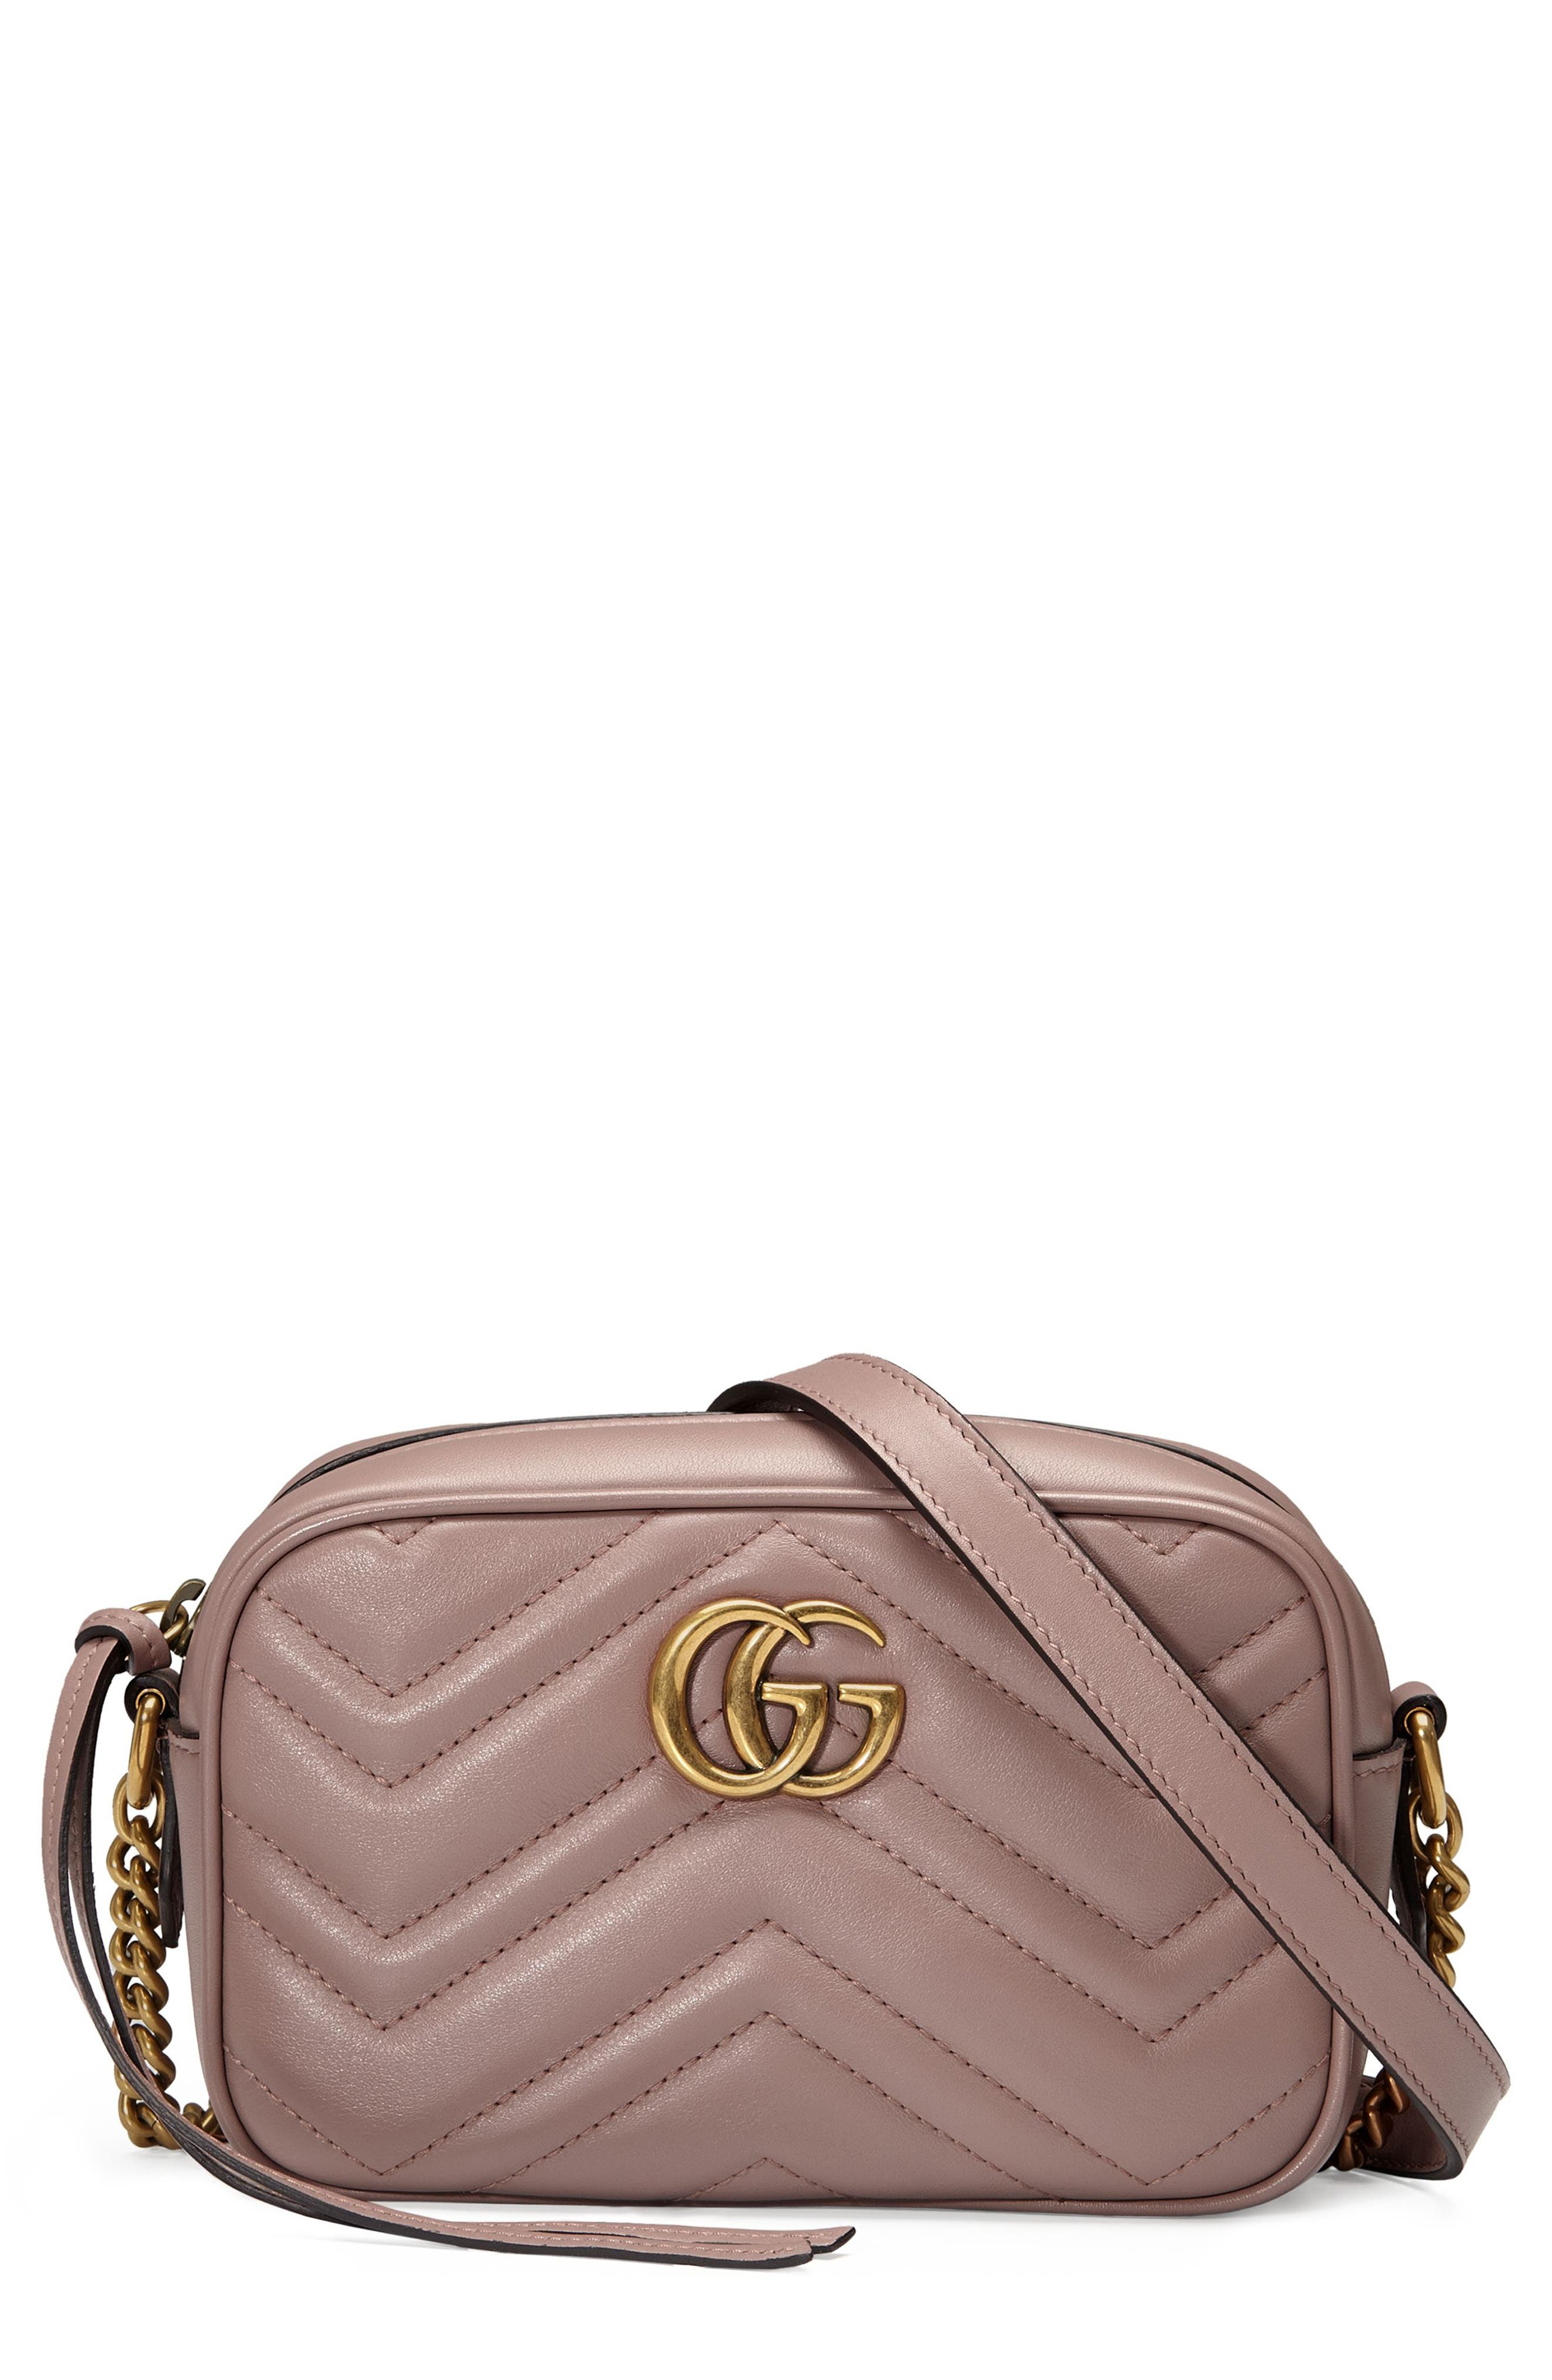 Gg Marmont 2.0 Matelassé Leather Shoulder Bag by Gucci